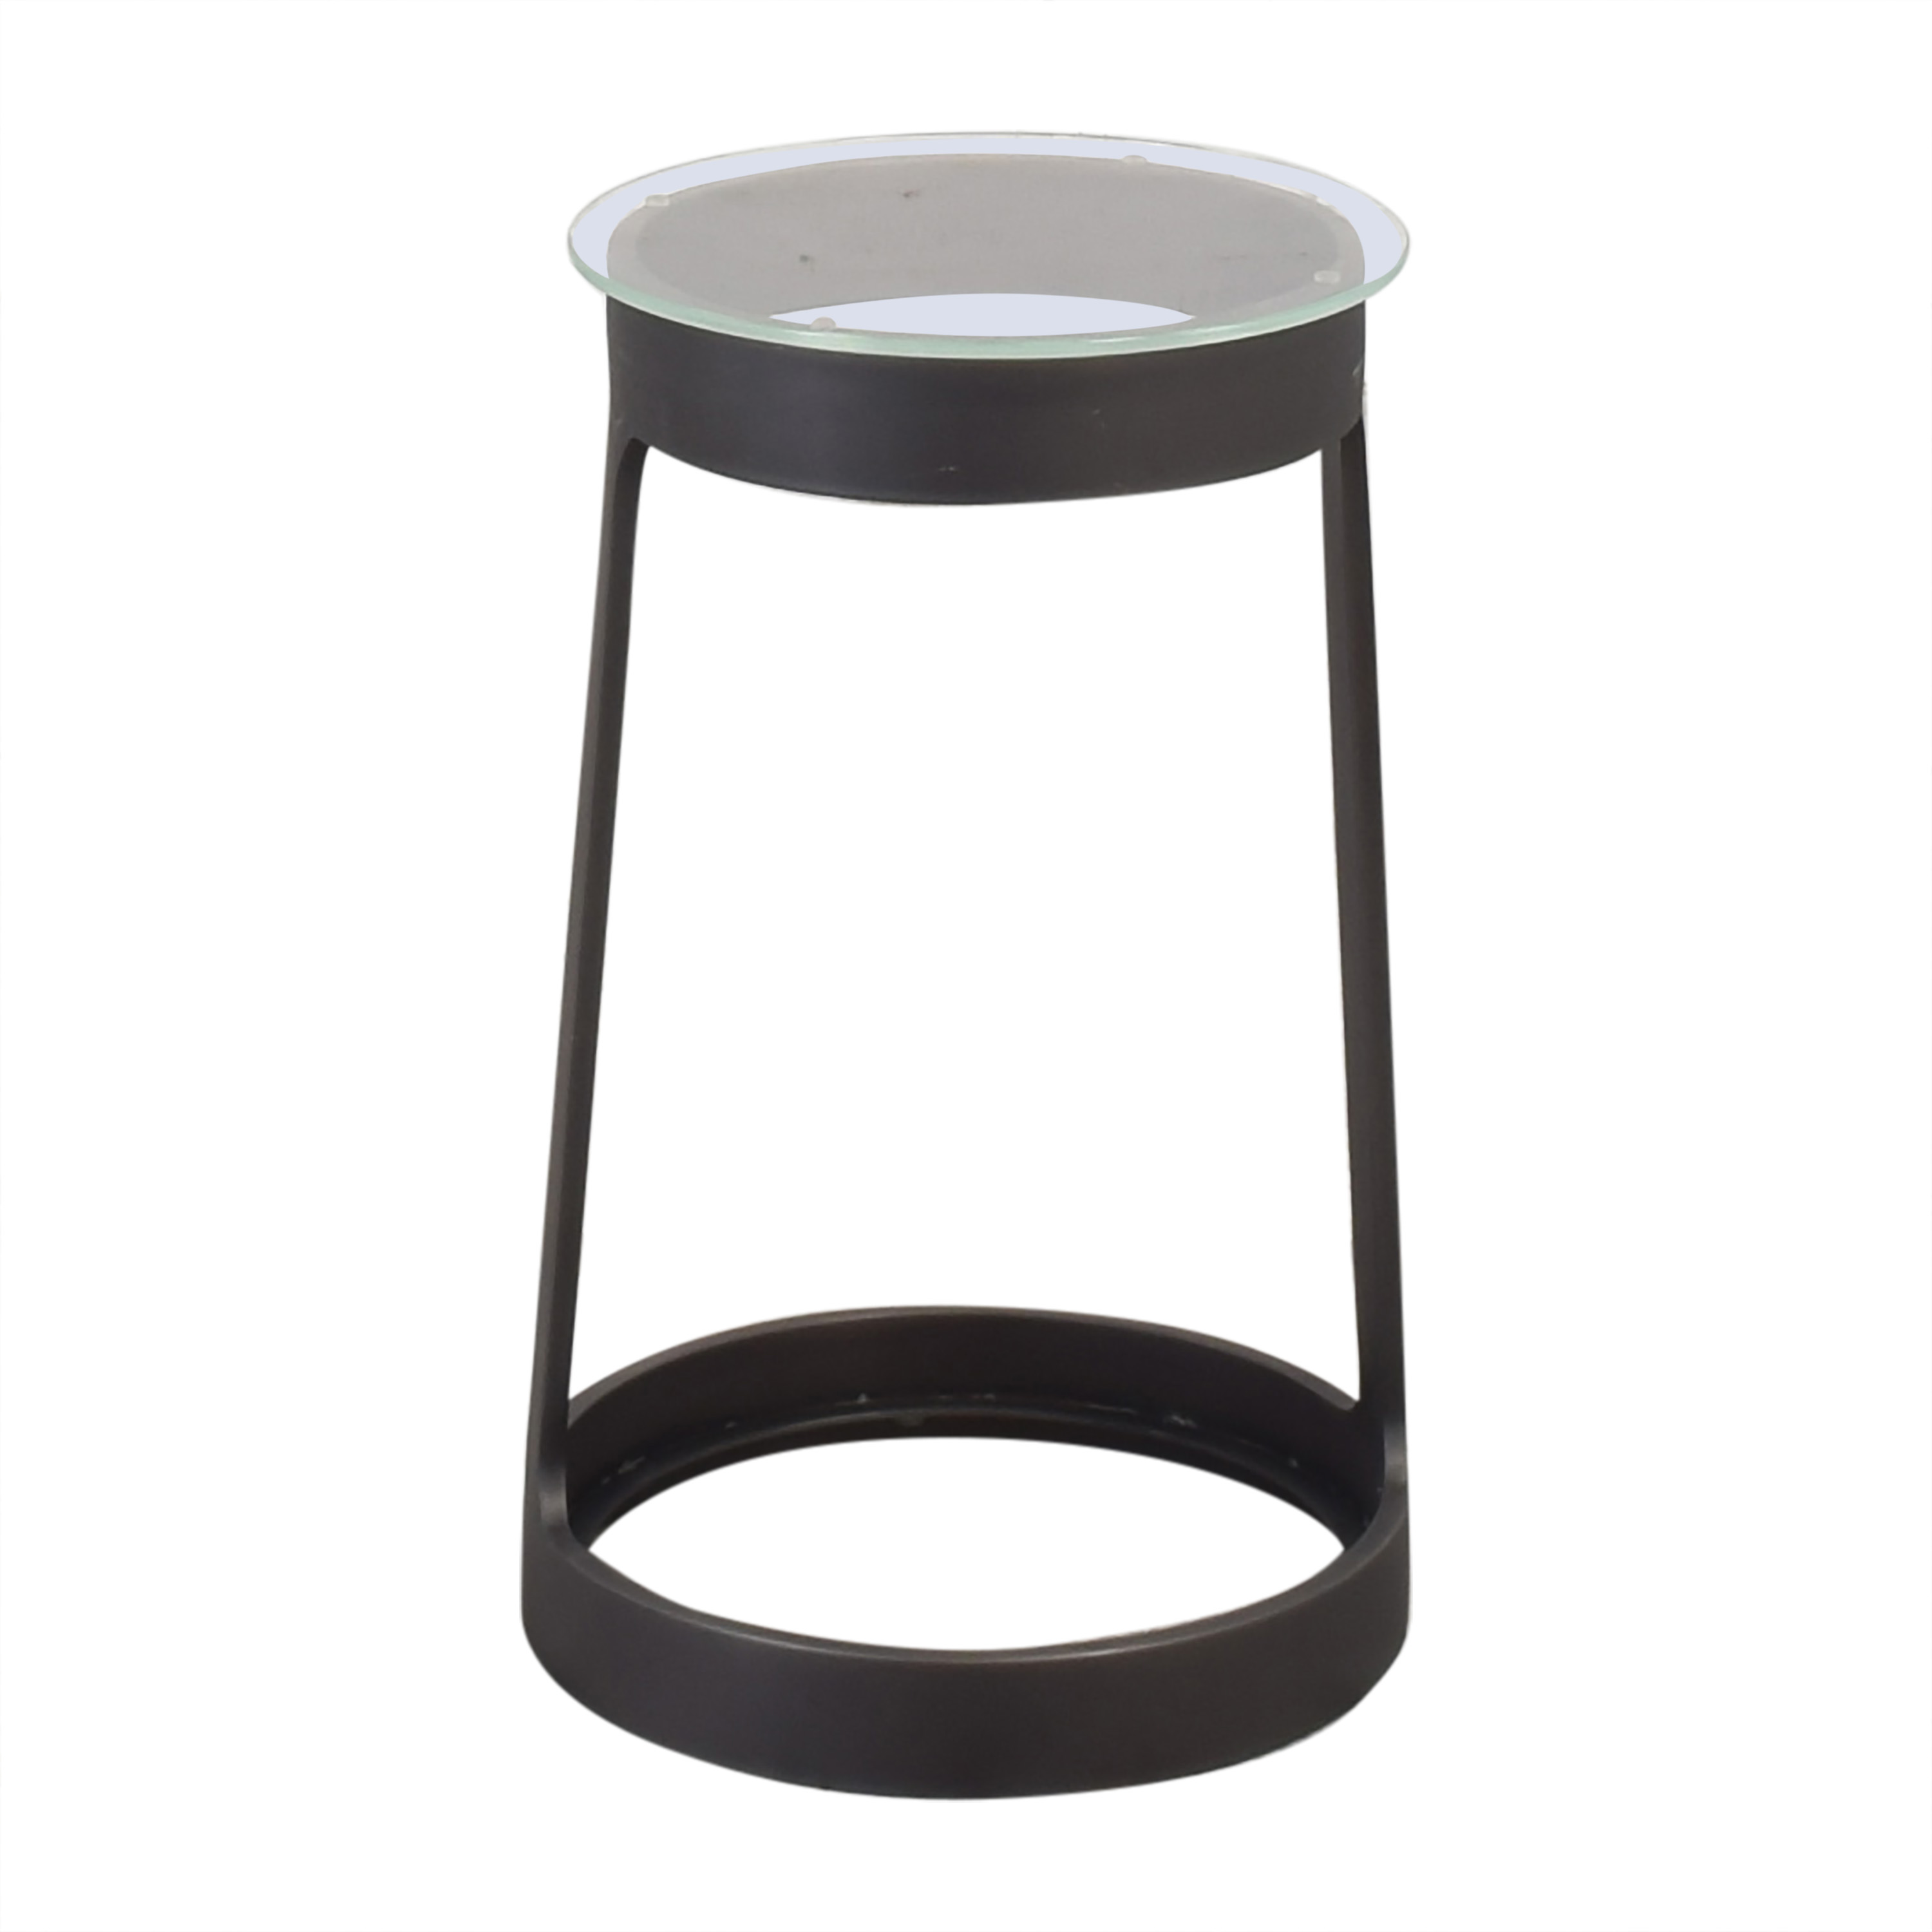 Restoration Hardware Round Cocktail Side Table discount